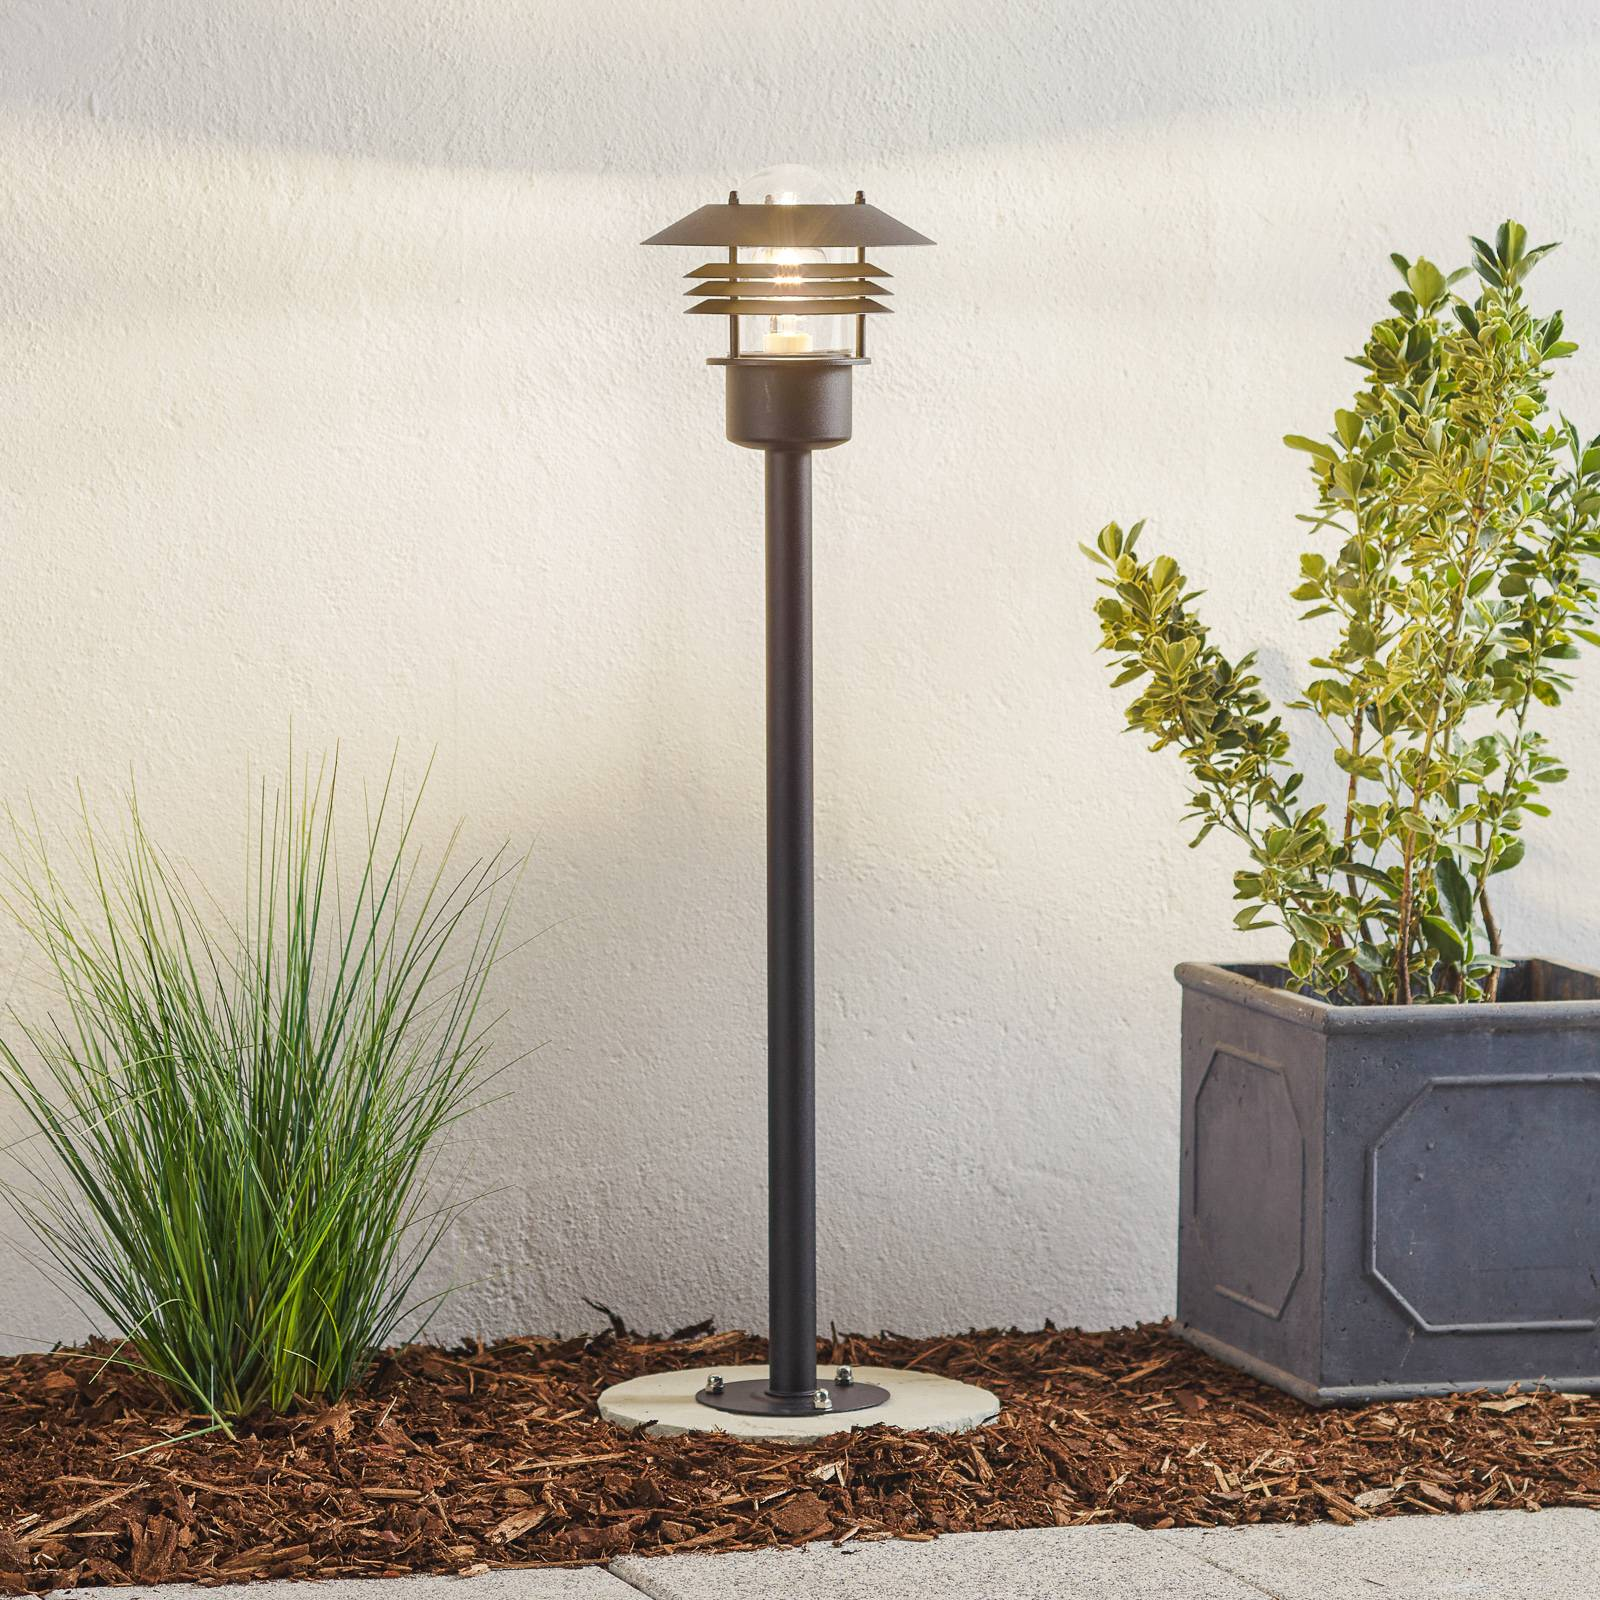 Stylish pathway lamp Vejers, black from Nordlux